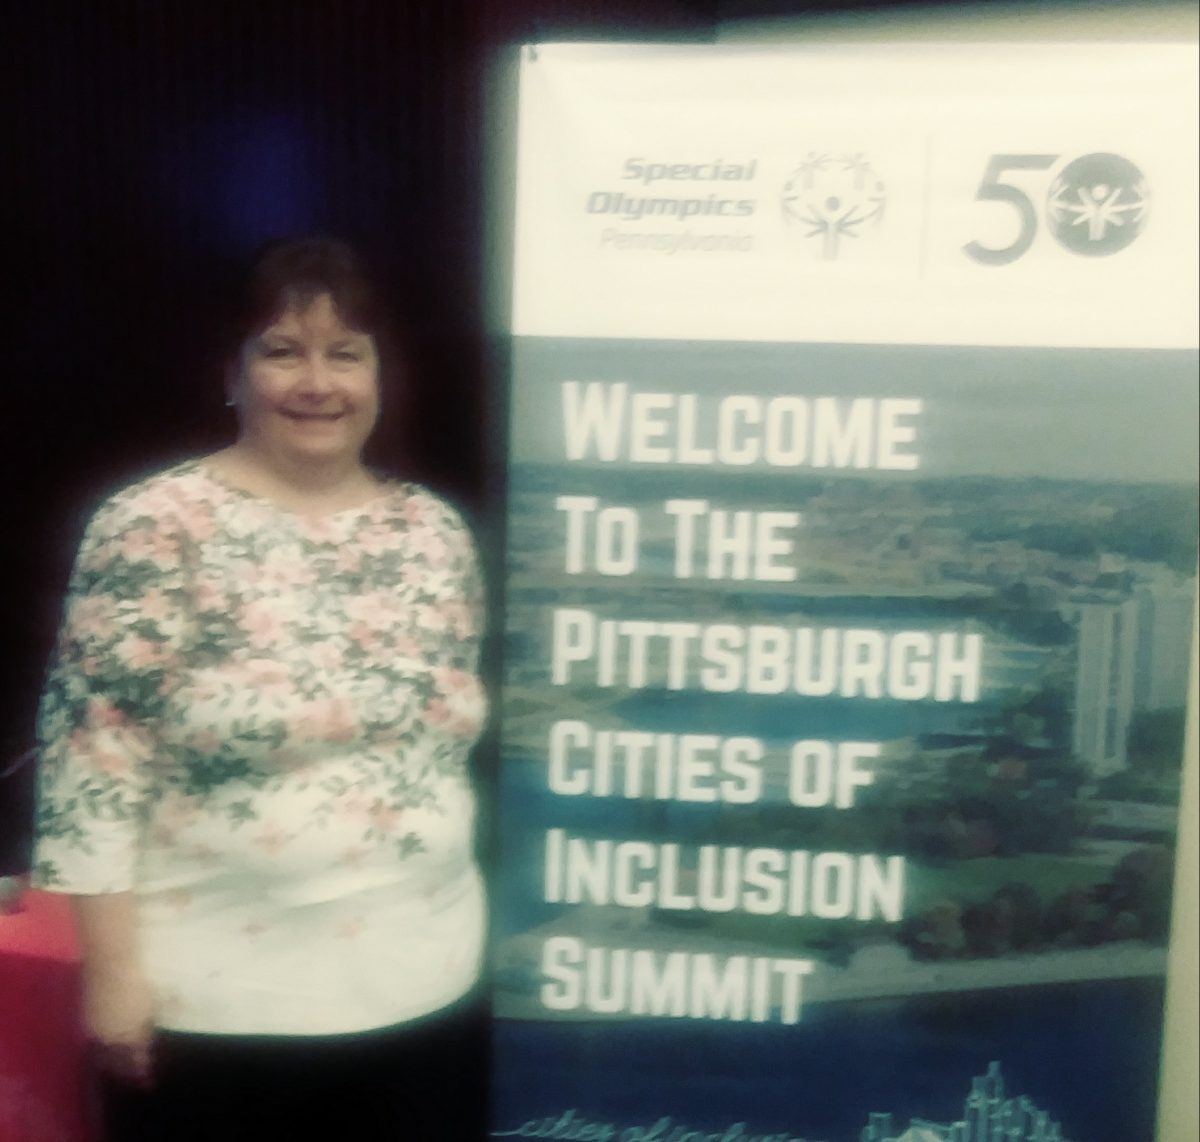 Photo of Lisa Kay Schweyer at the Pittsburgh Cities of Inclusion Summit